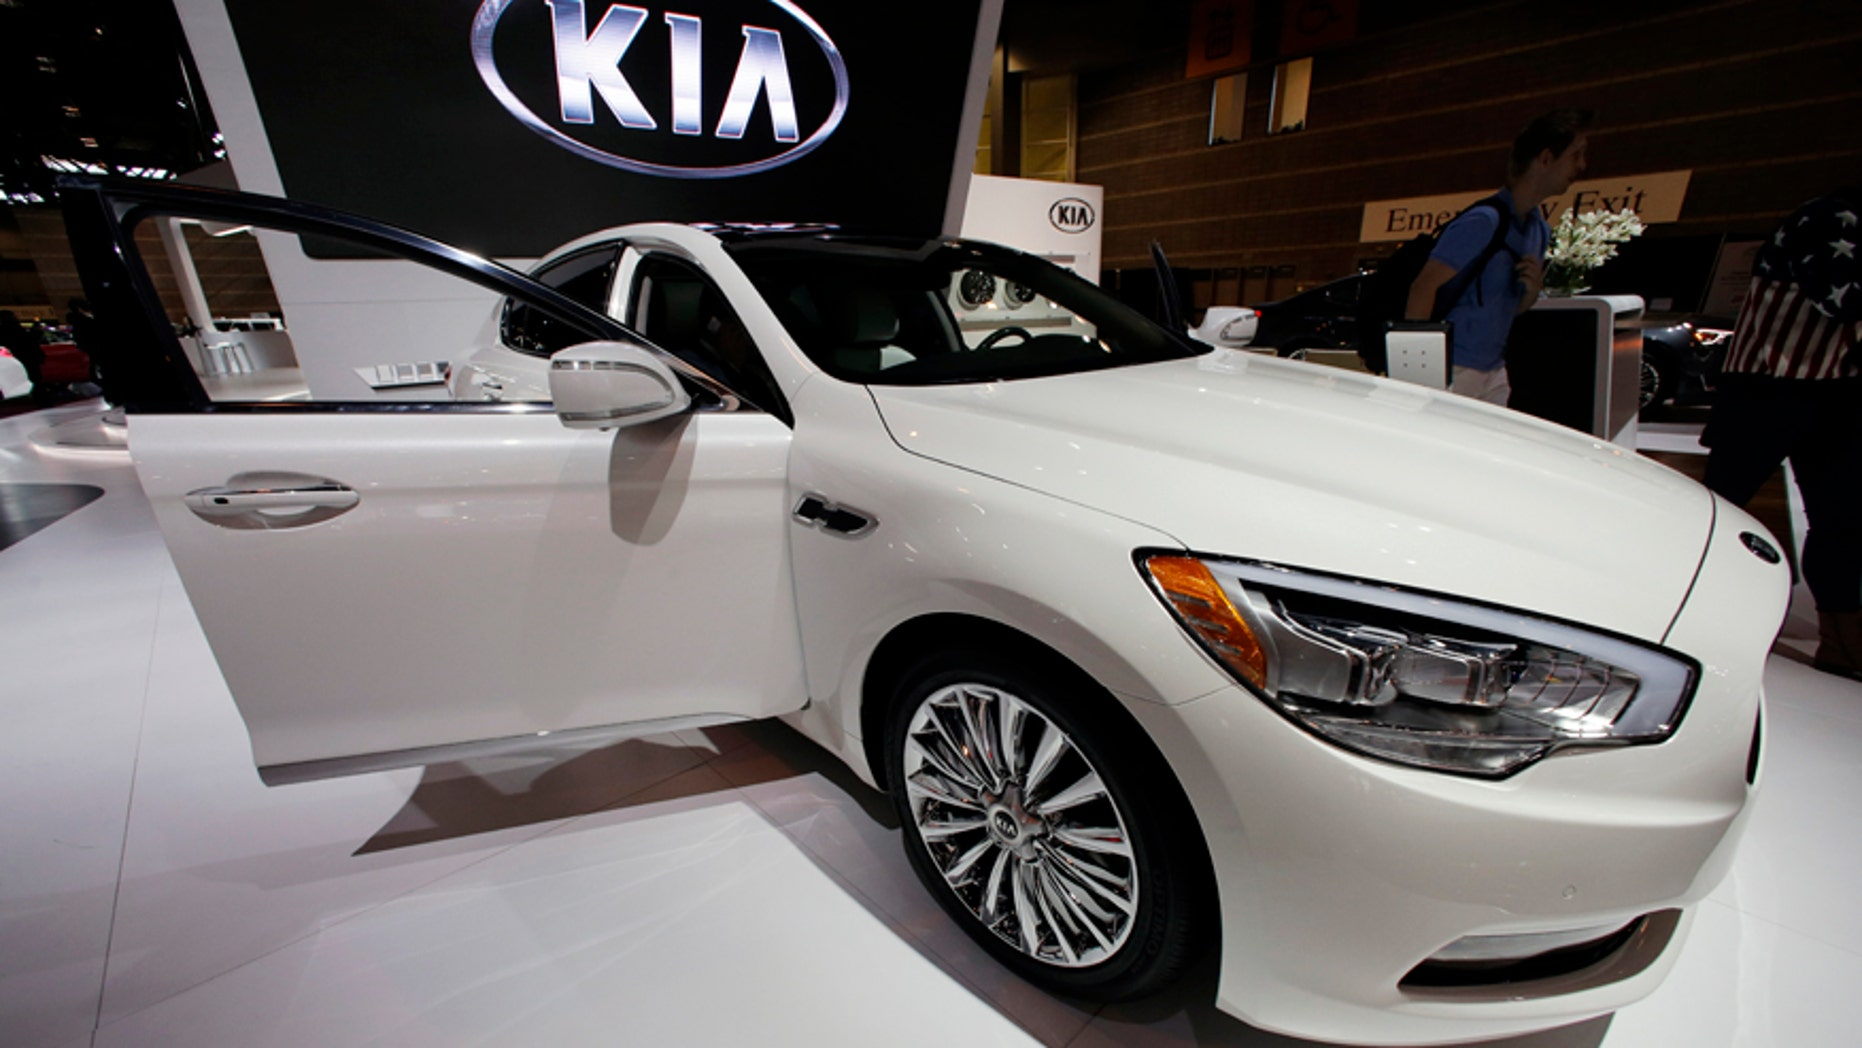 FILE - In this Feb. 7, 2014 file photo, the Kia 2015 K900, V8 is on display during the media preview of the Chicago Auto Show at McCormick Place in Chicago. Kia placed second on J.D. Power and Associates' annual survey of new vehicle quality, released Wednesday, June 17, 2015. (AP photo/Nam Y. Huh, File)